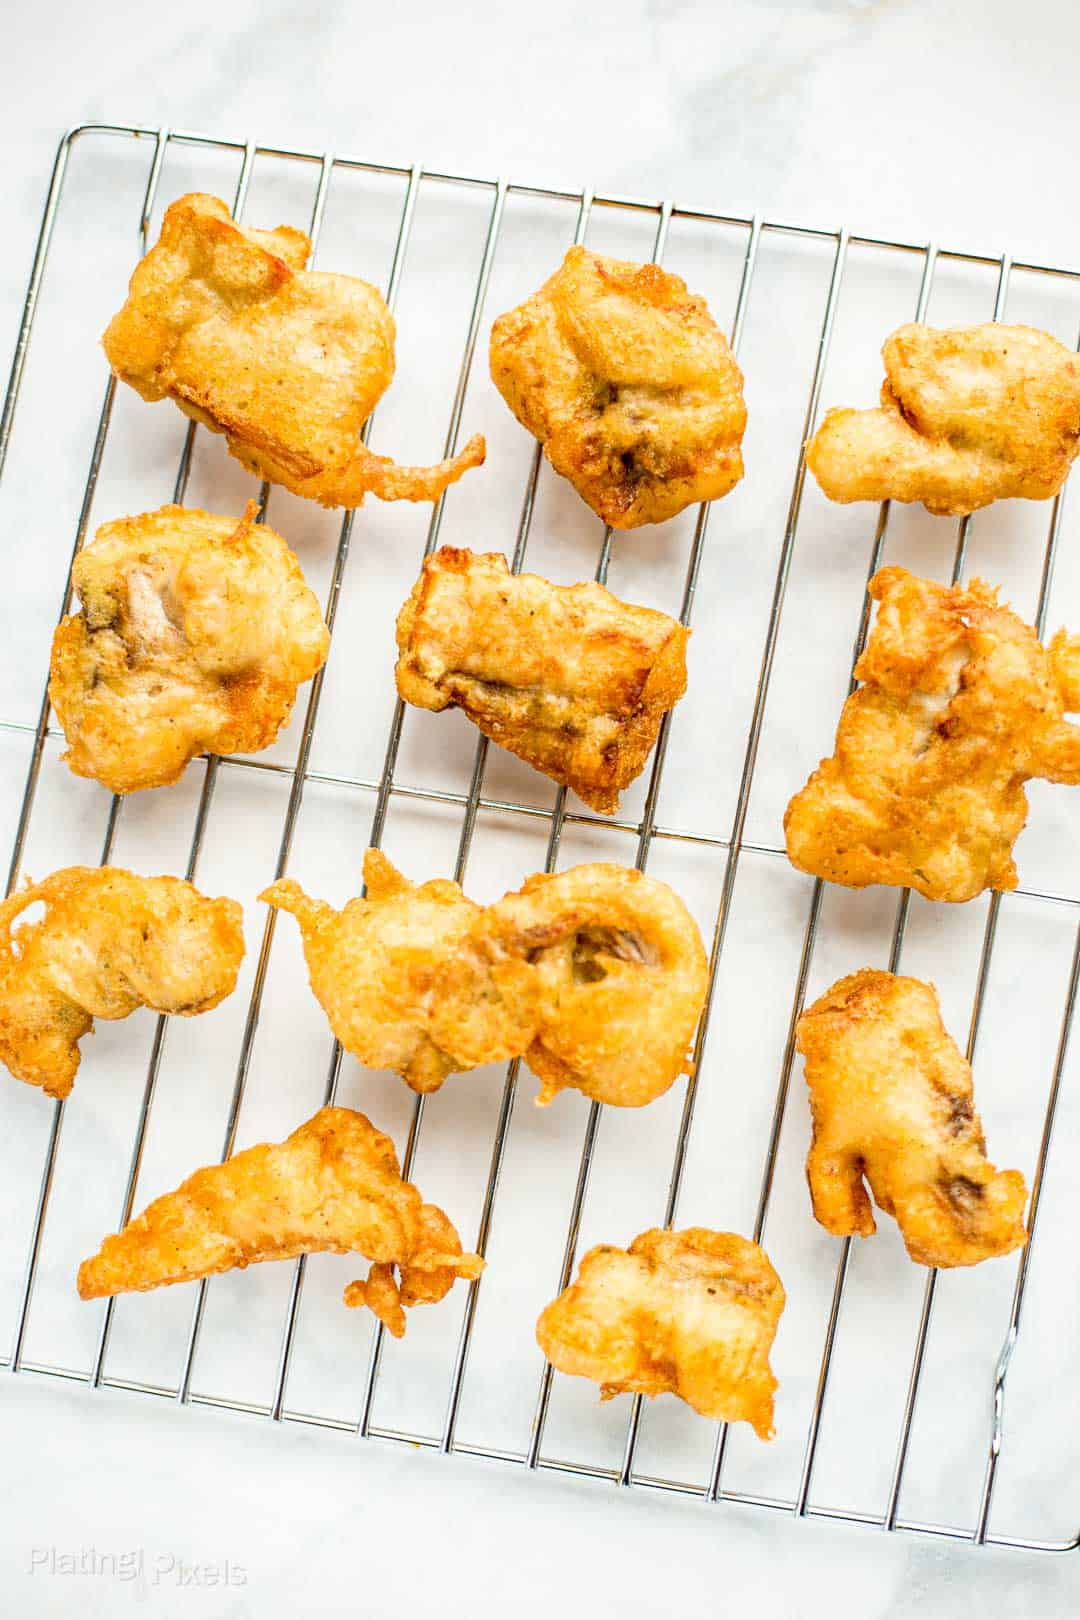 Golden Beer Battered Fried Fish pieces on a wire rack